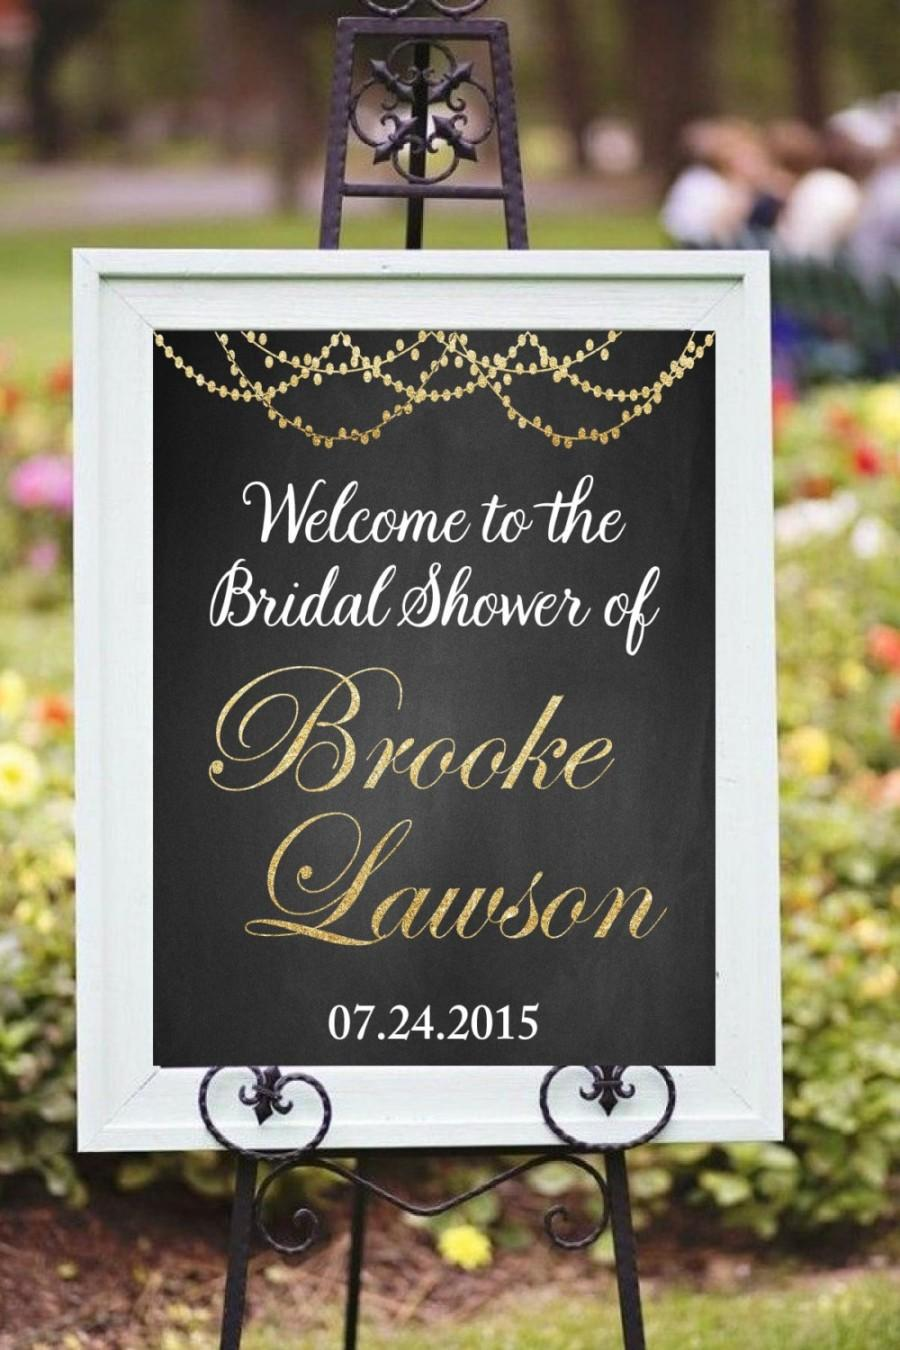 Mariage - Welcome Bridal Shower printable decor, Modern chalkboard style, Bridal shower decorations, Wedding decorations, DIY, Golden glitter